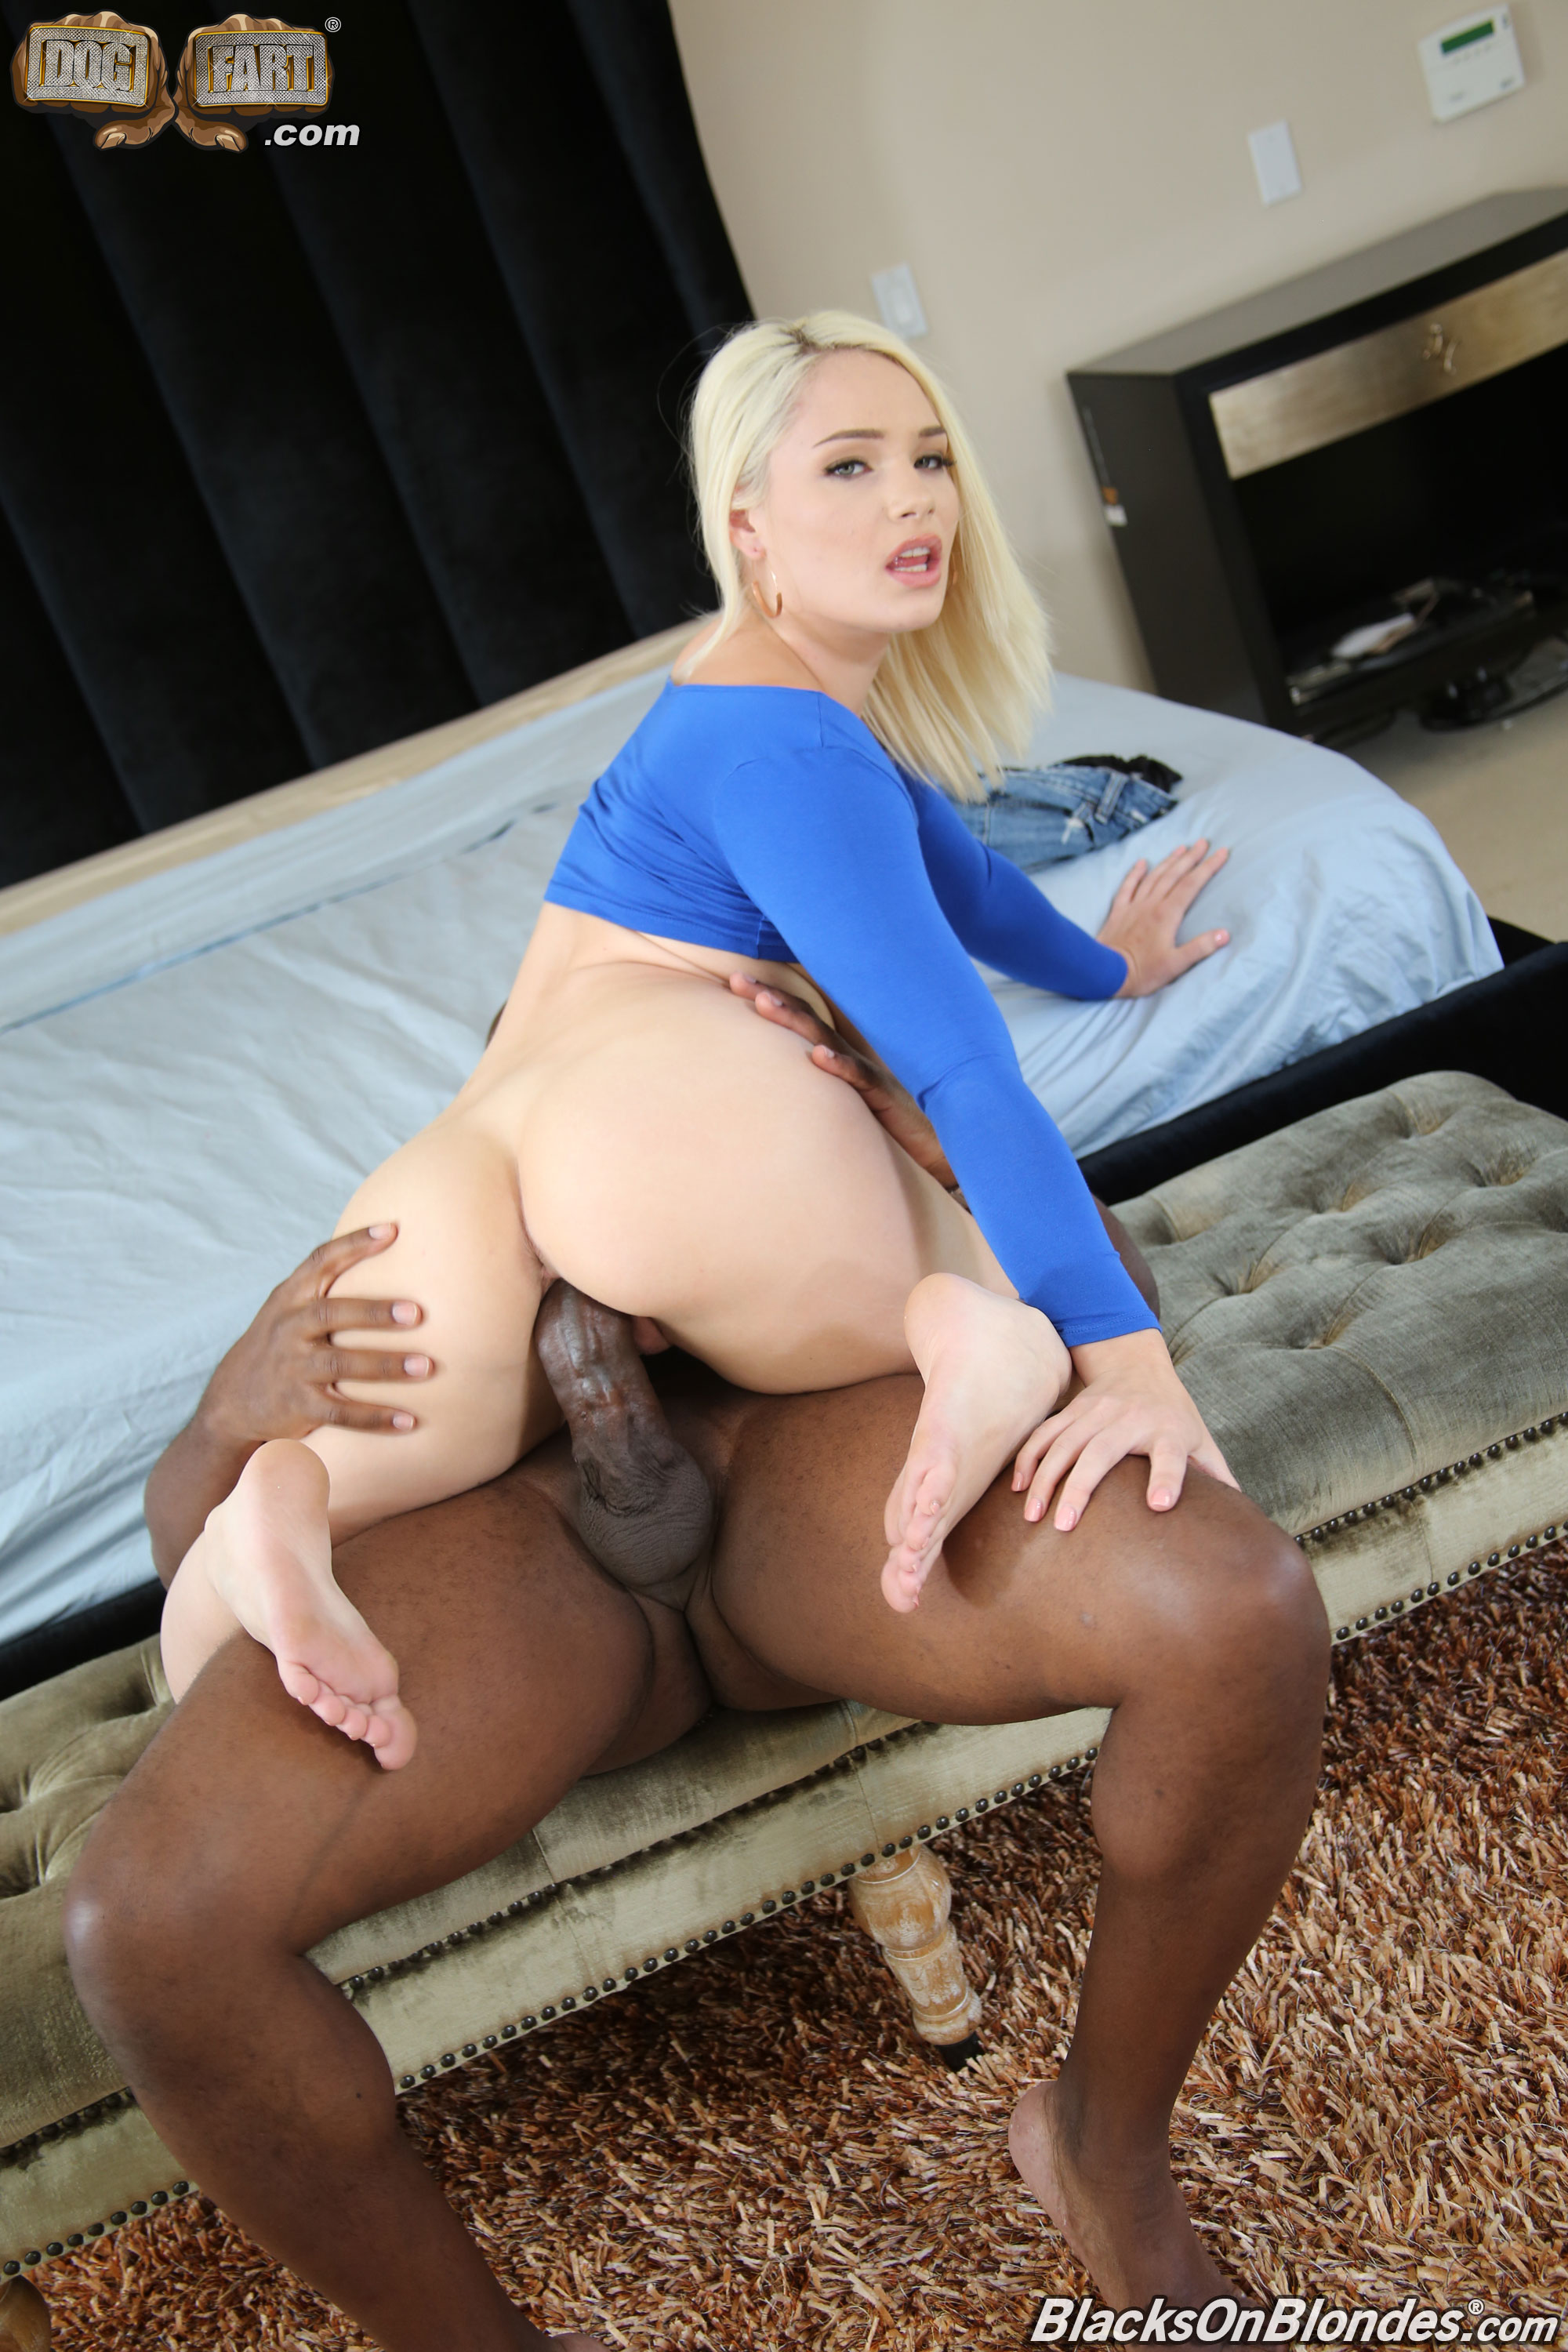 http://galleries.blacksonblondes.com/content/hadley_viscara/pics/pic/20.jpg